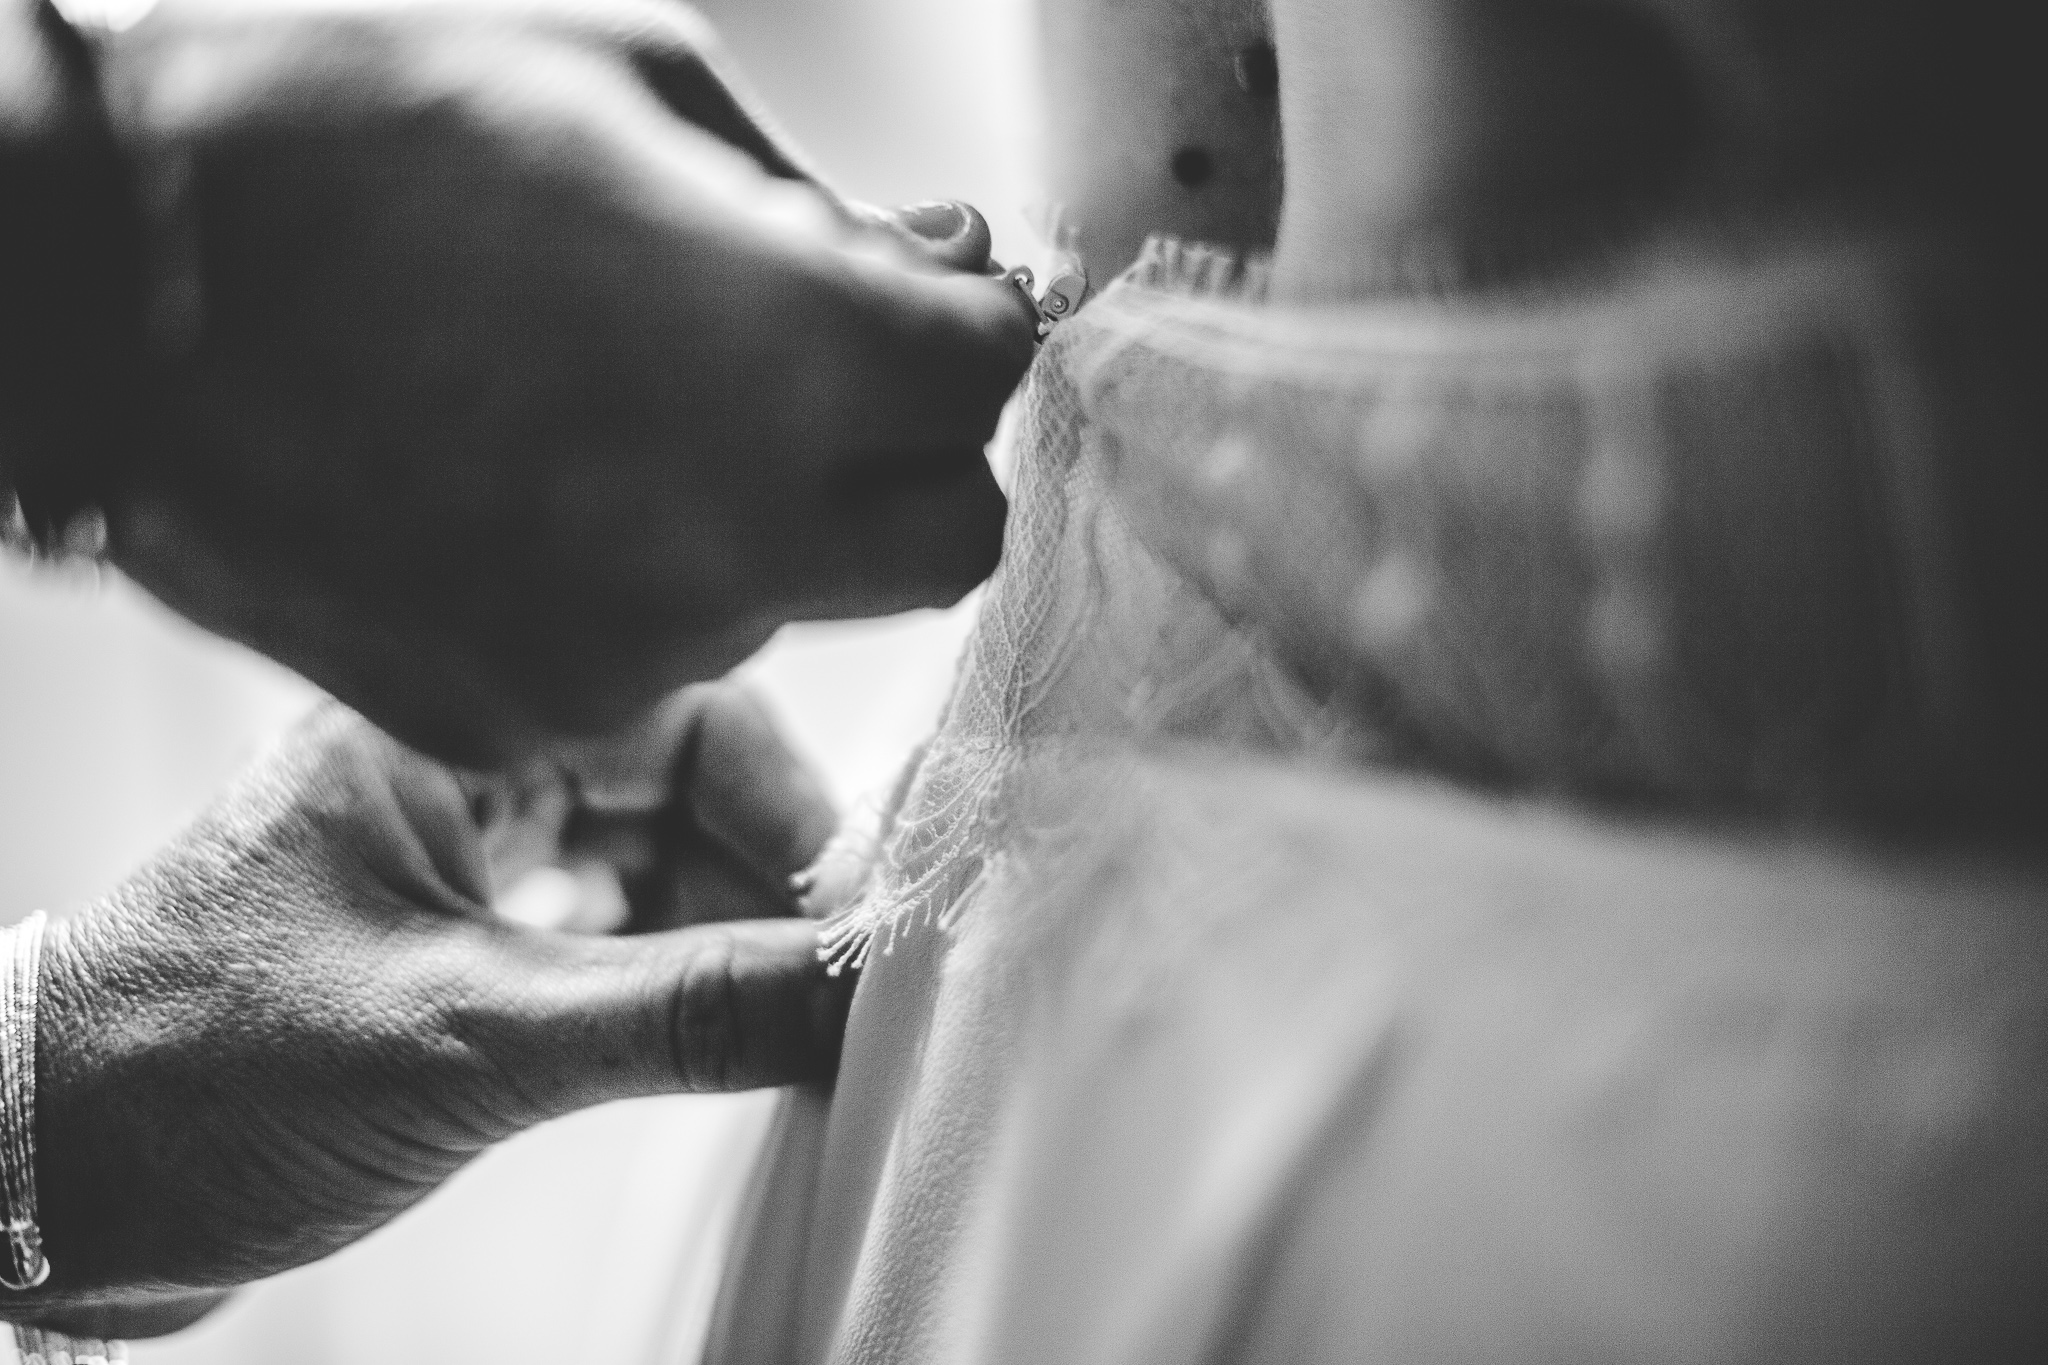 reportage mariage photo habillage preparatifs la mariee details robe collier chaussures toulouse